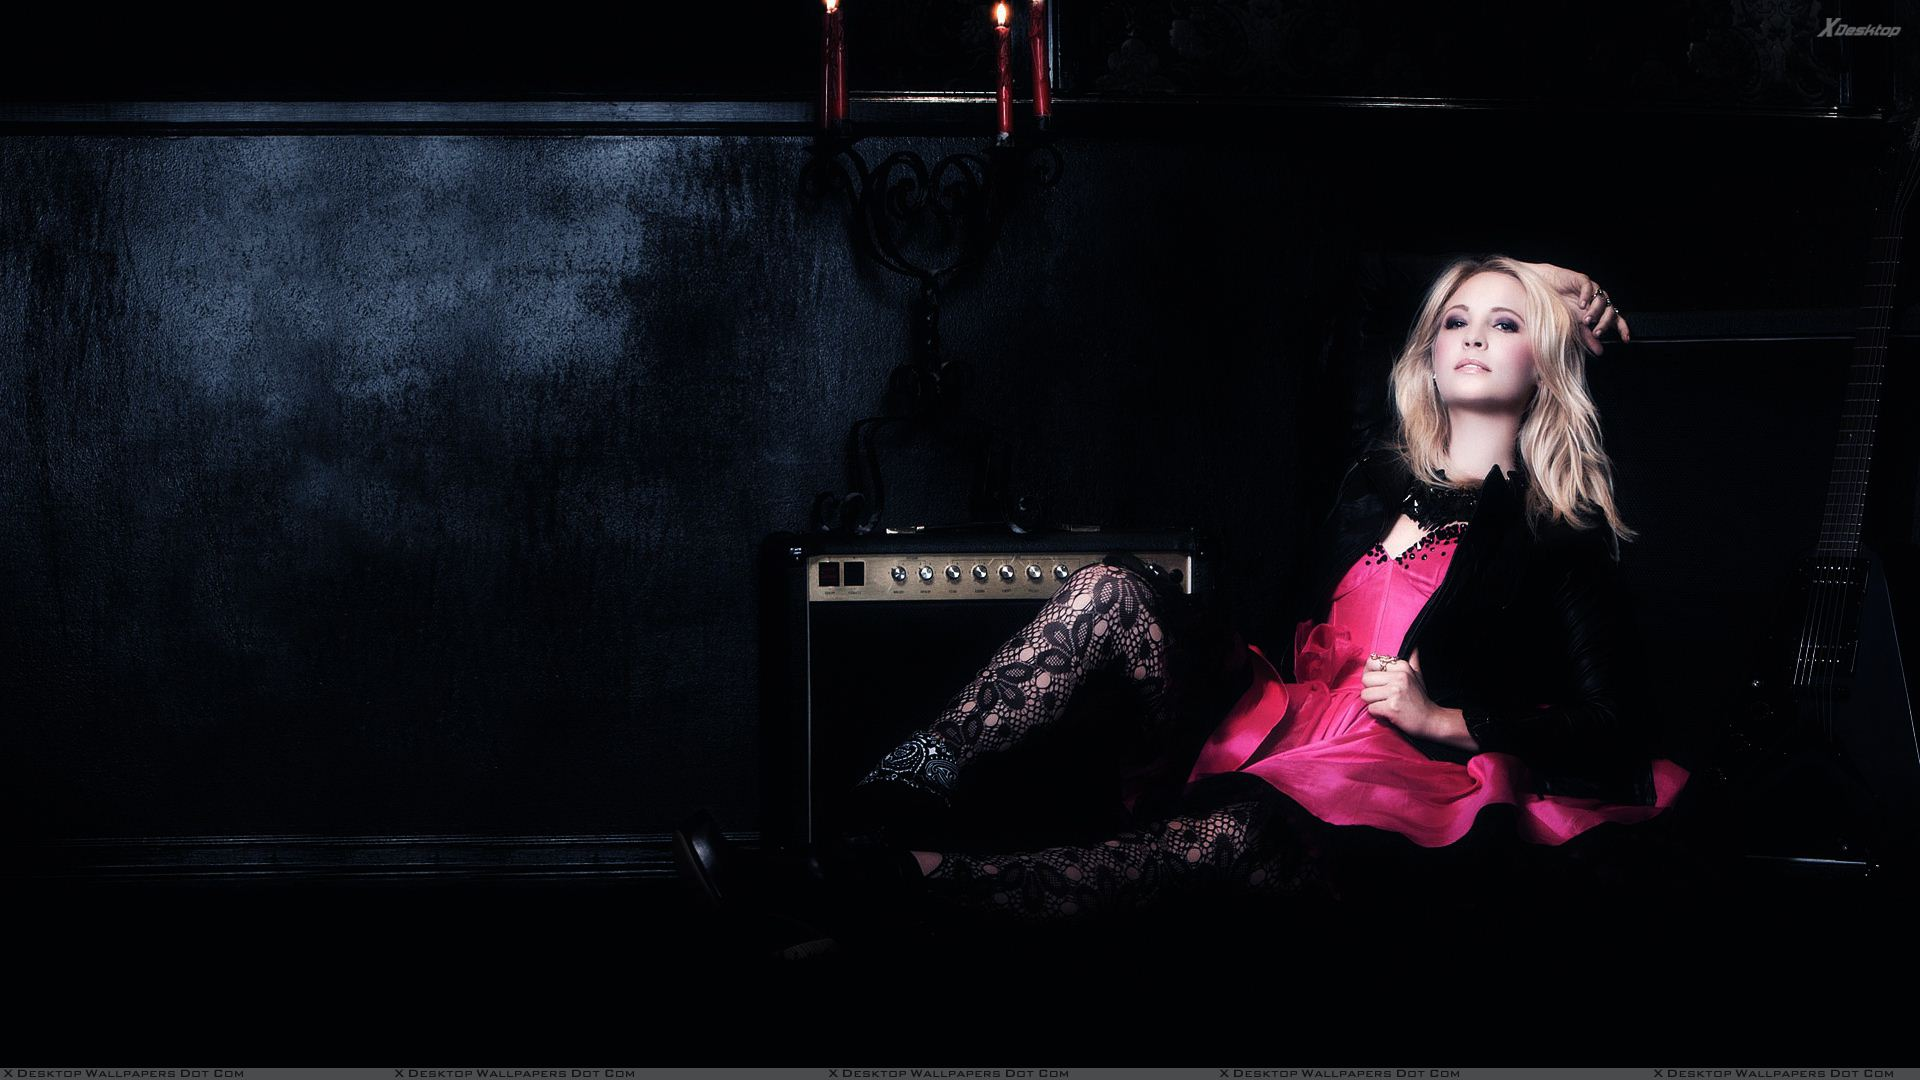 1920x1080 - Candice Accola Wallpapers 29